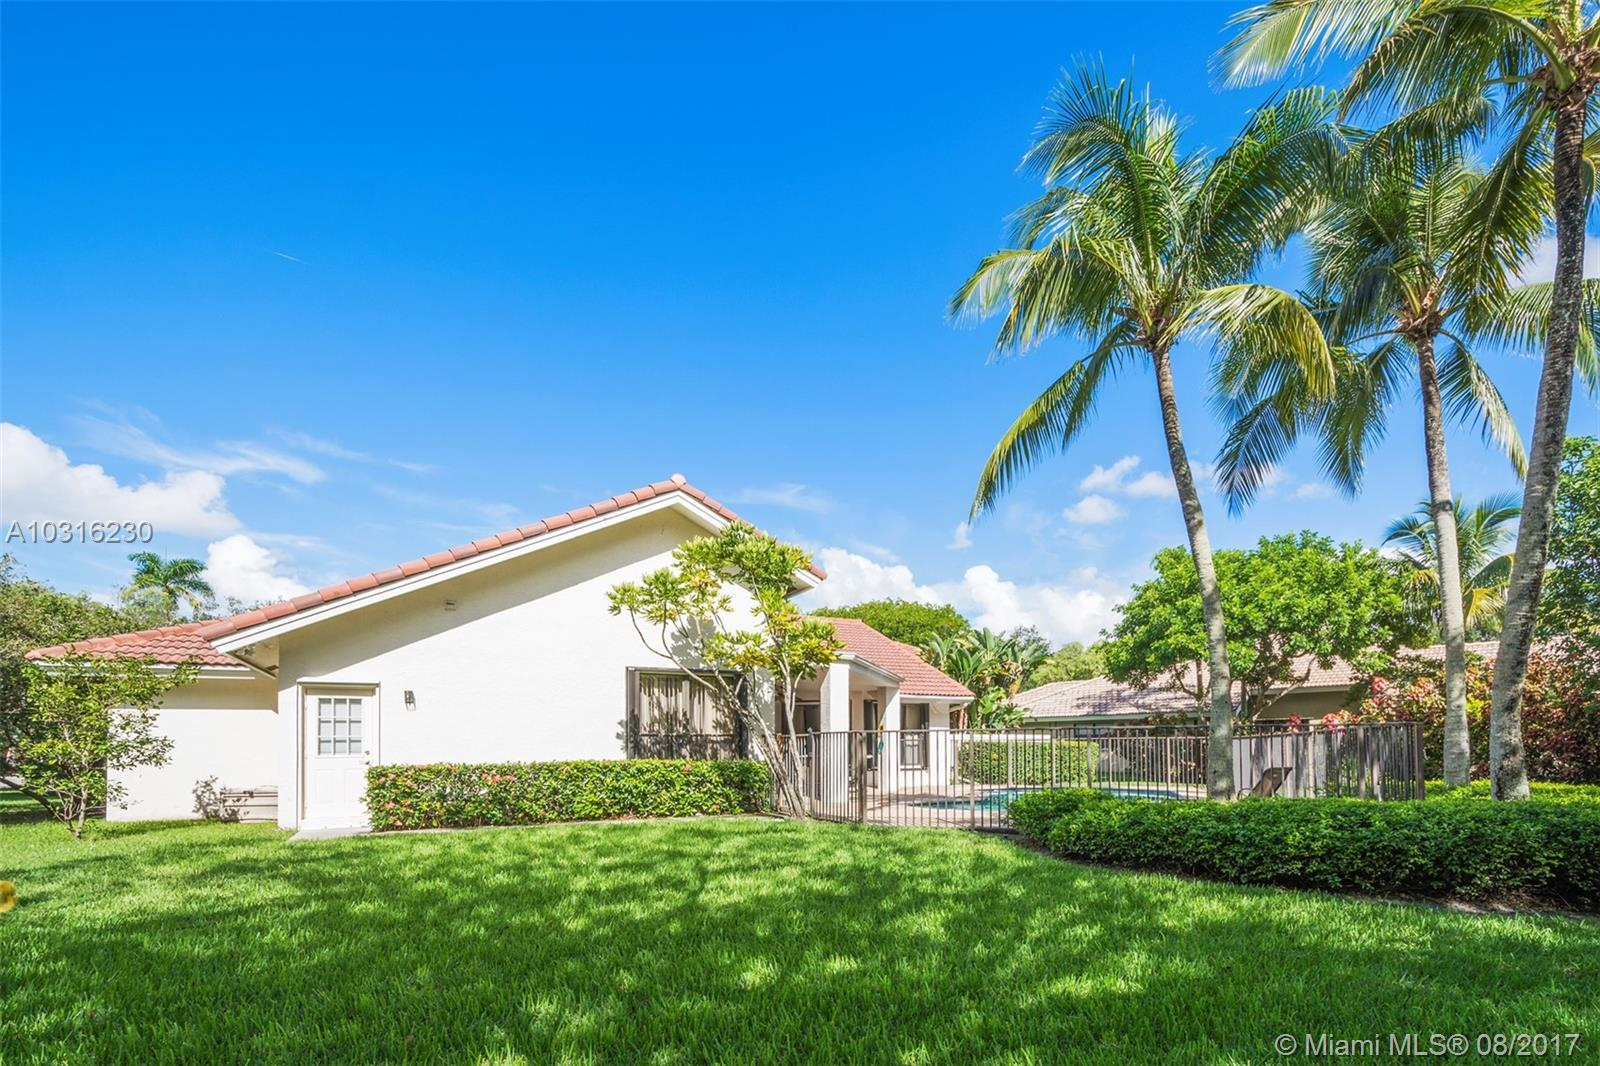 1260 Laurel Ct, Weston FL, 33326